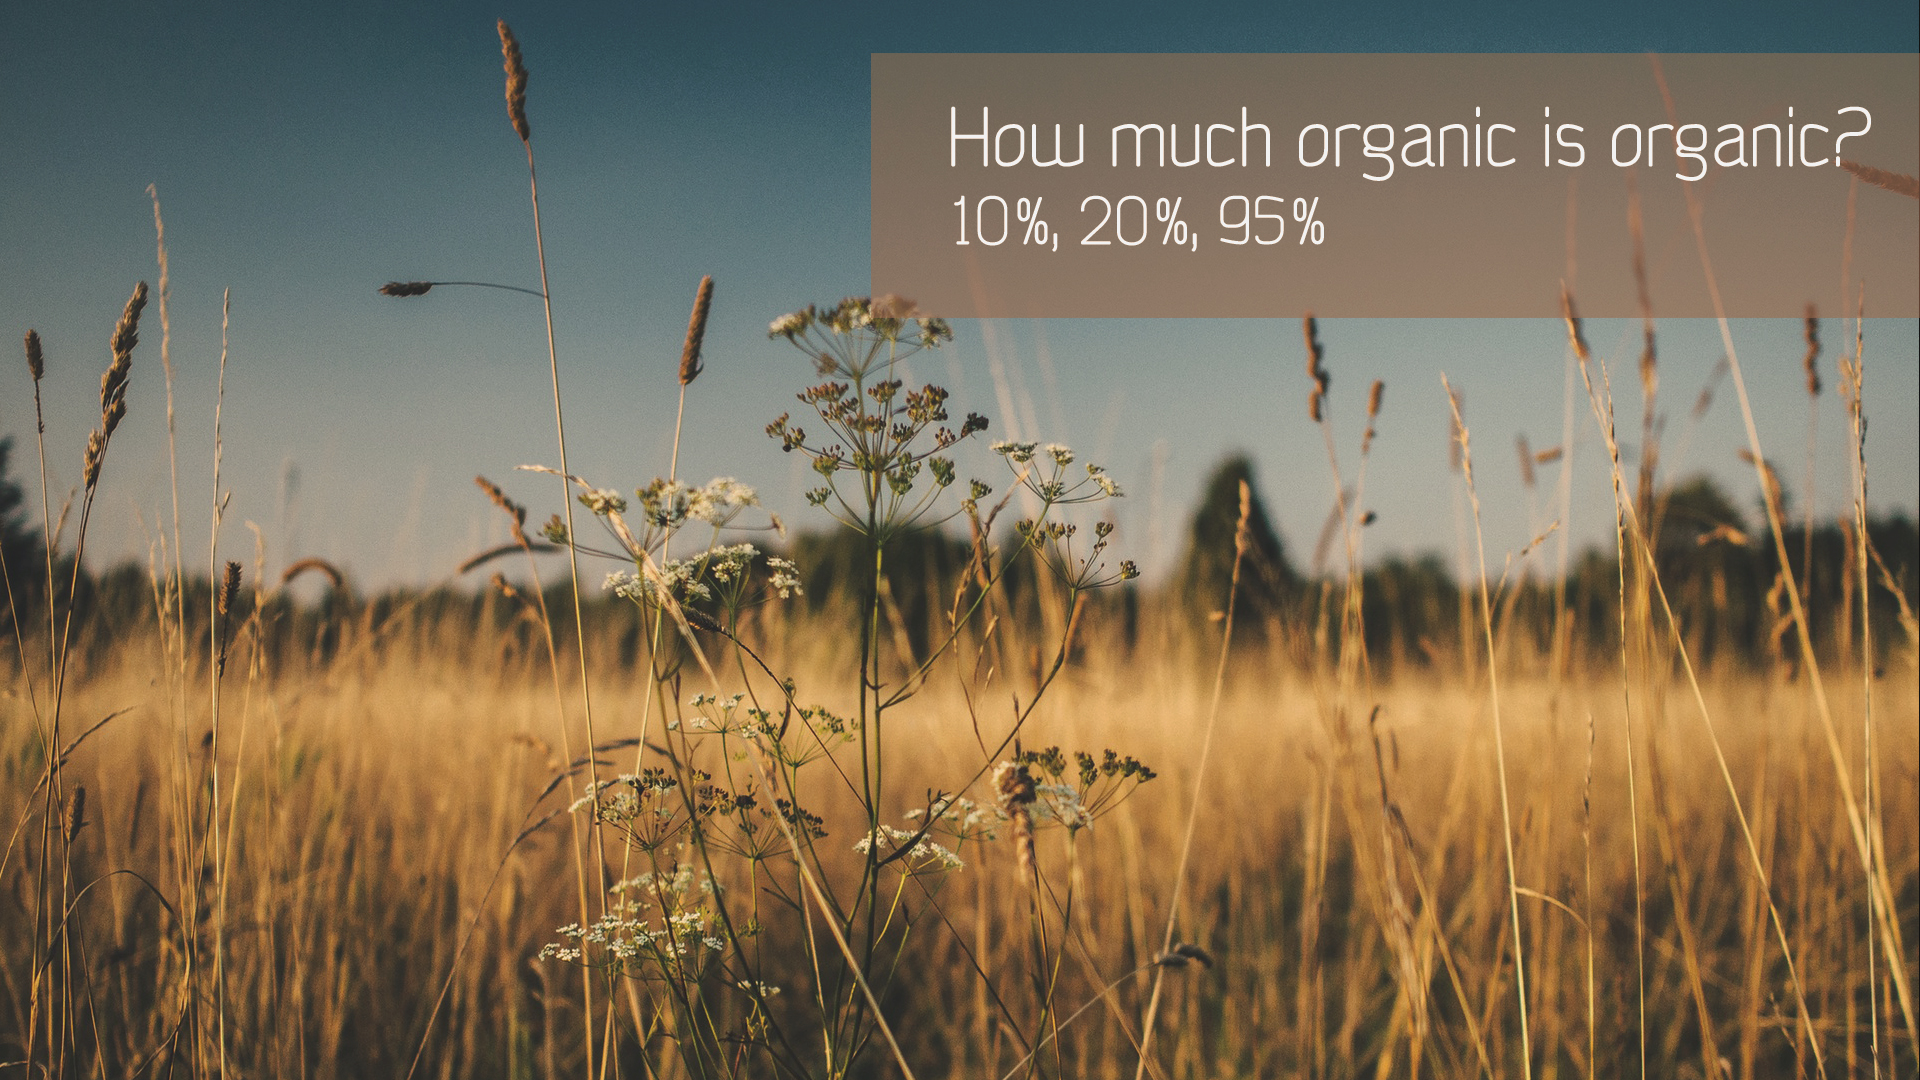 How much organic is needed to make organic cosmetics?